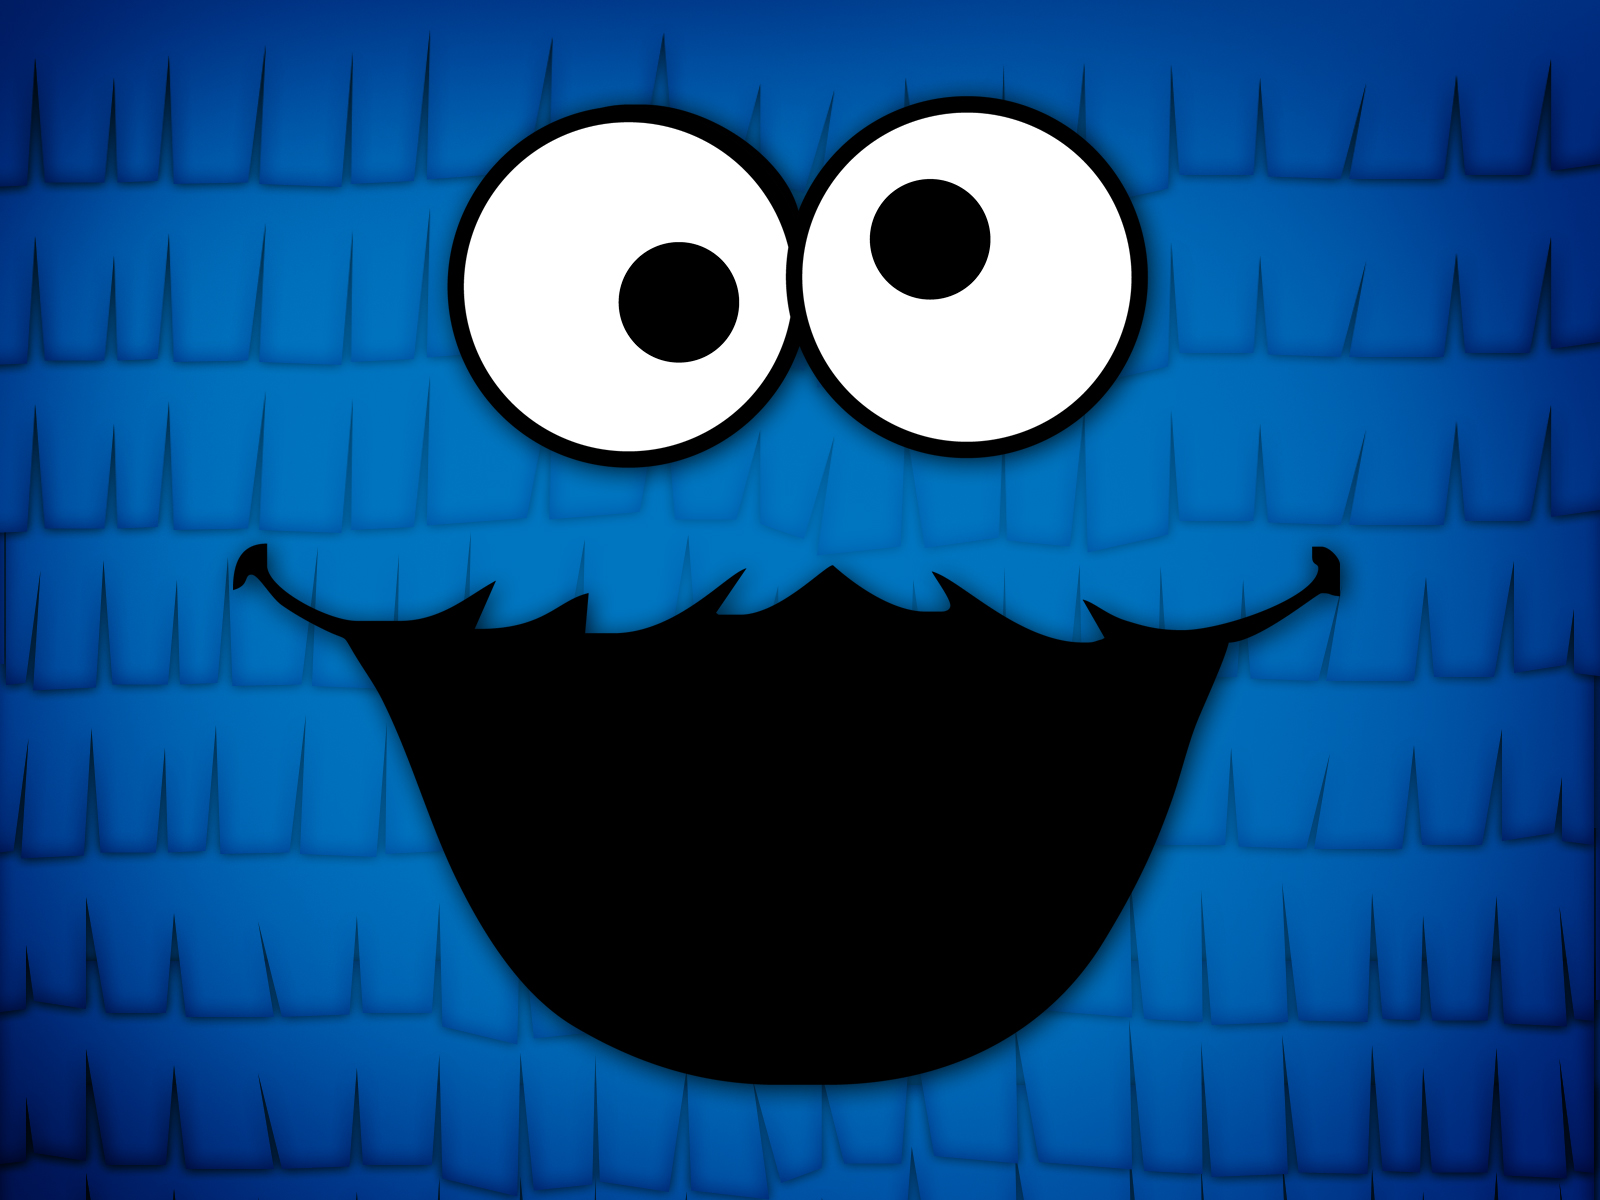 Cookie monster pinata house cookies 1600x1200 thomland world cookie monster piata wallpaper 1600 x 1200 voltagebd Images